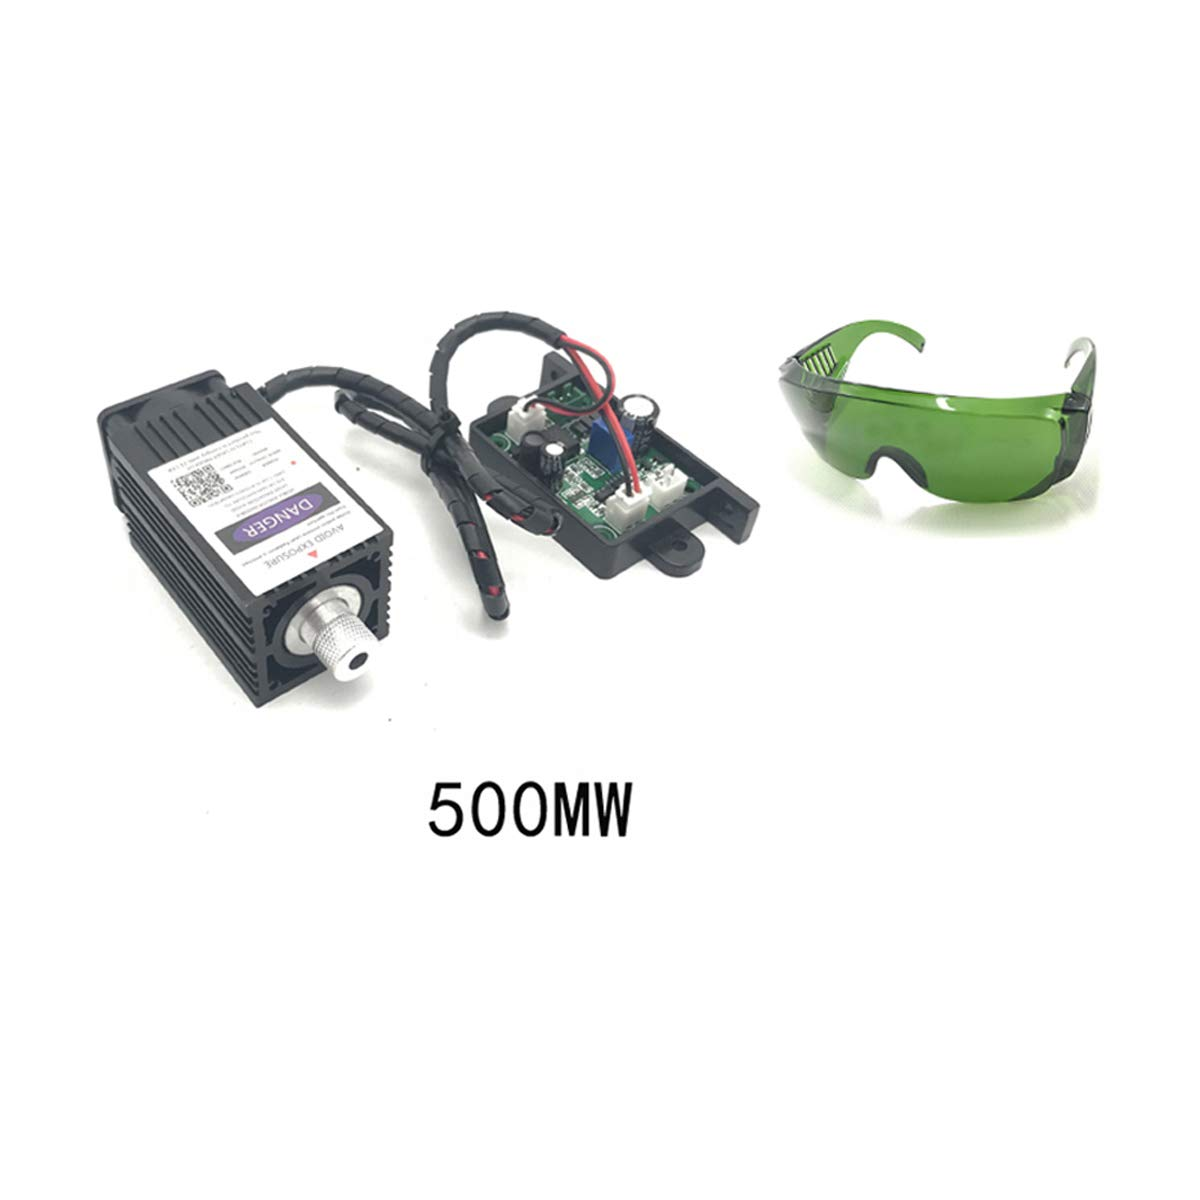 GUUQA Blue Purple Laser Module 405nm 500mw Focusable for 3D Printer/CNC Engraving/Laser Engraving 12V